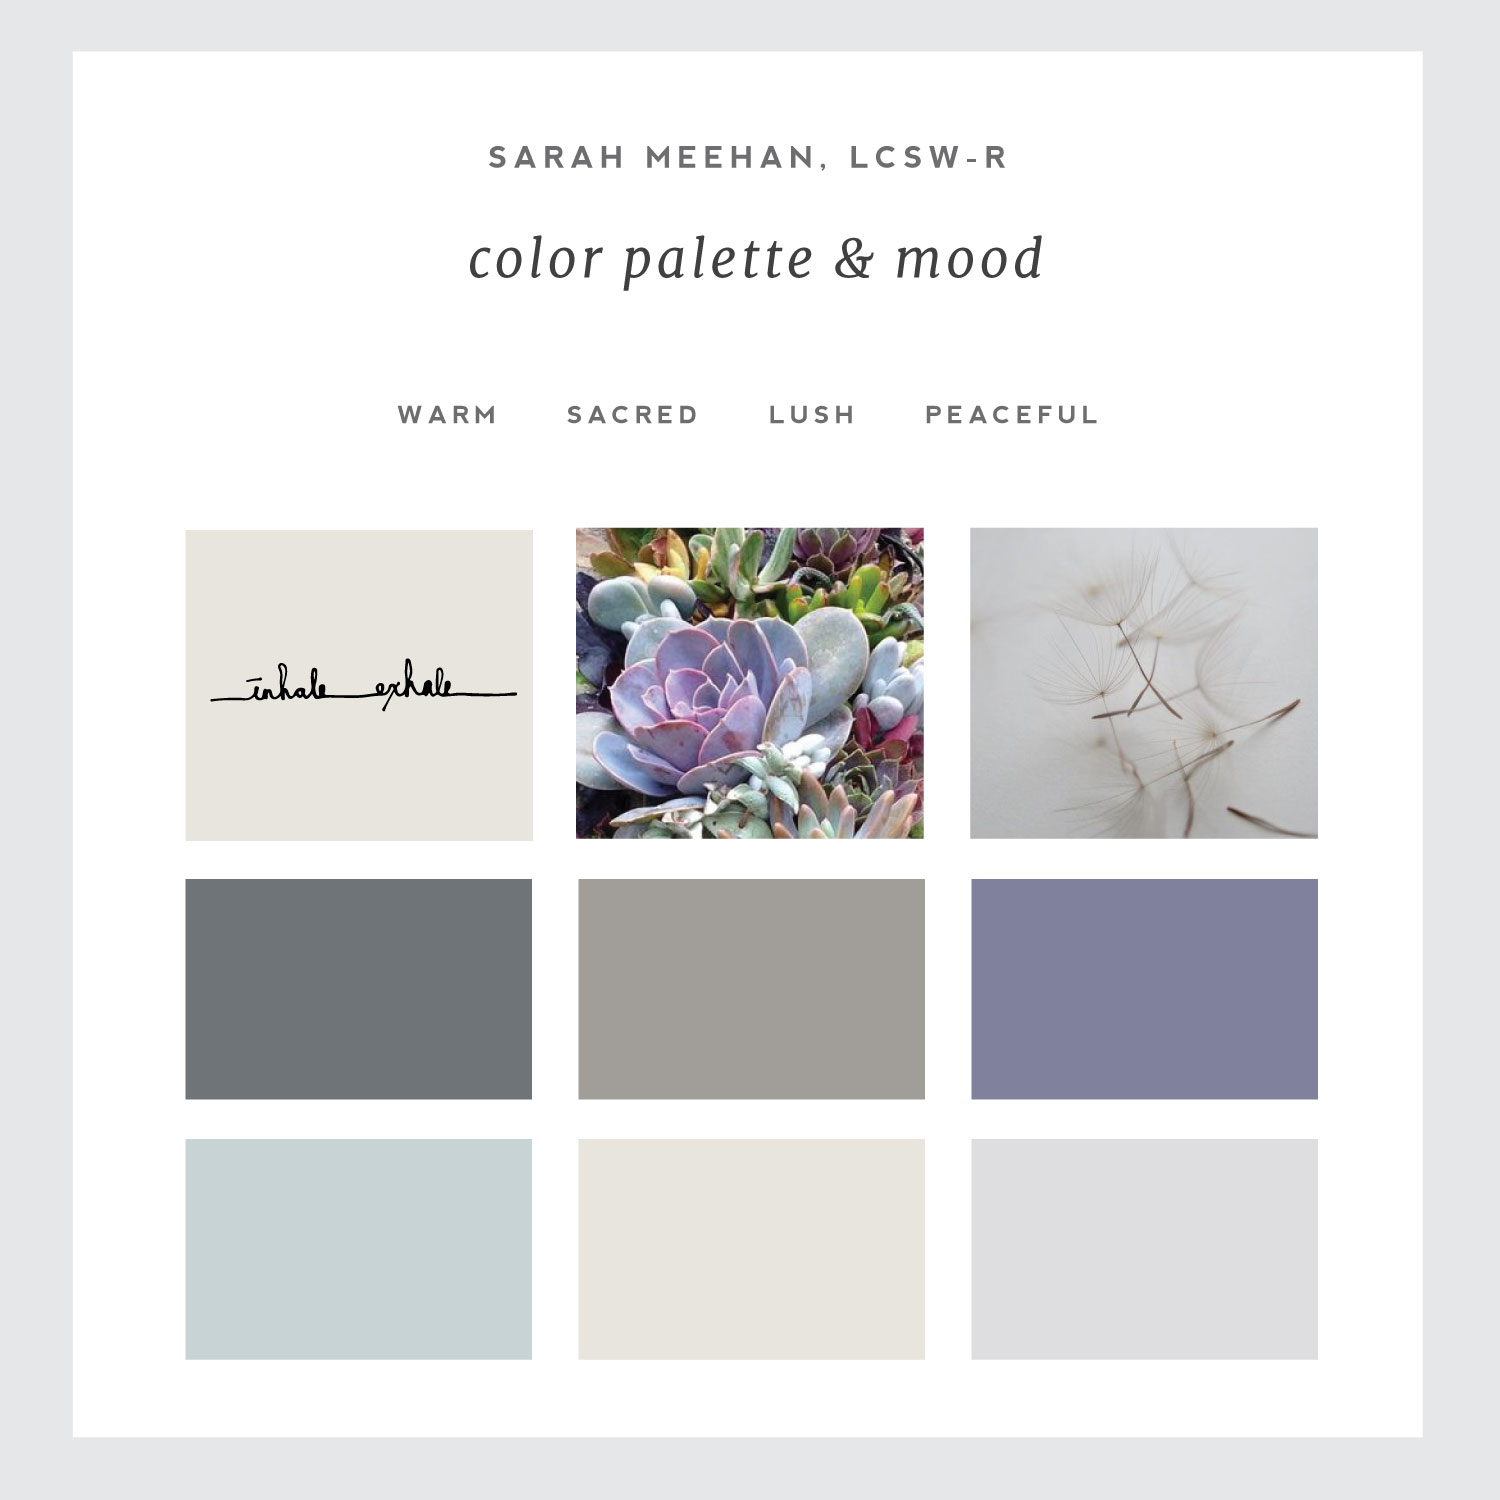 Color palette for Simple & Soulful Creative client Sarah Meehan, LCSW-R..